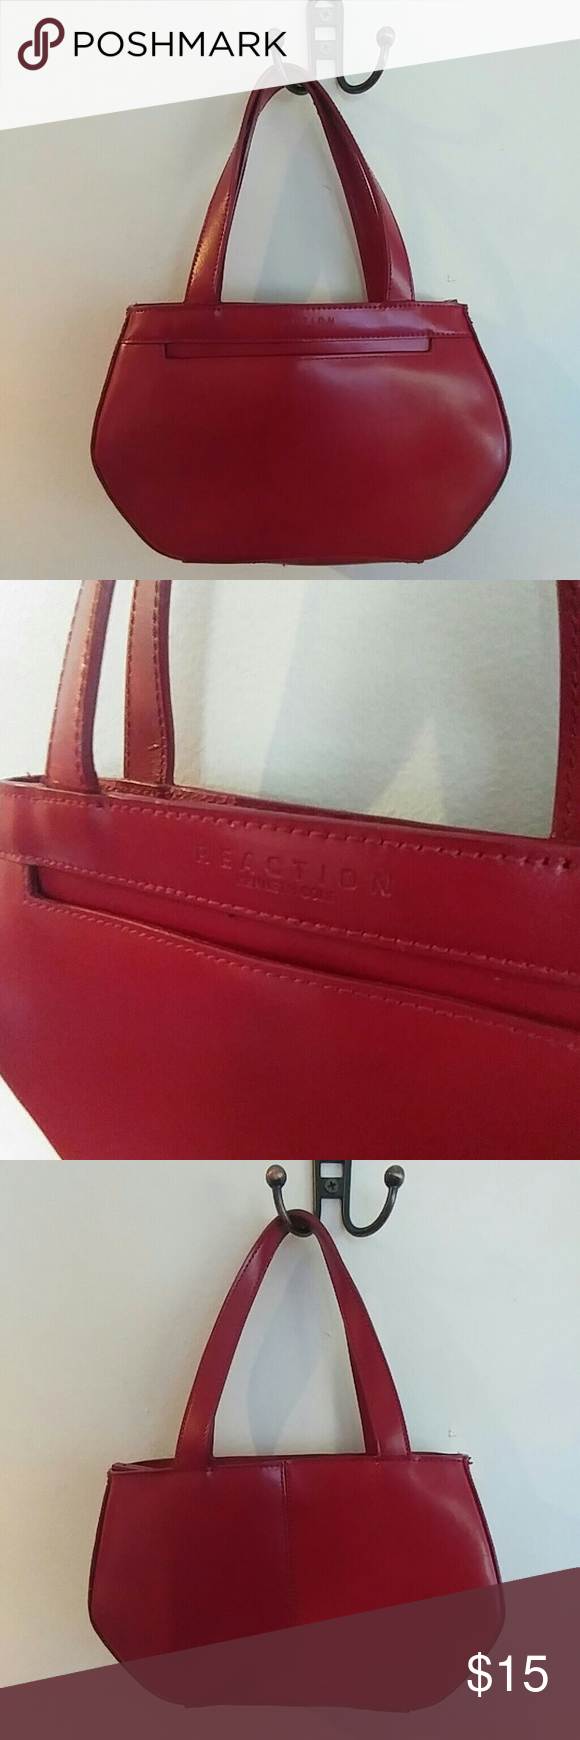 Reaction Kenneth Cole handbag Deep red leather-like handbag by Kenneth Cole. 10 inches wide, 7 inches tall. Front pocket plus one zip inner pocket and zip closure. Barely used, excellent condition. Kenneth Cole Reaction Bags Mini Bags